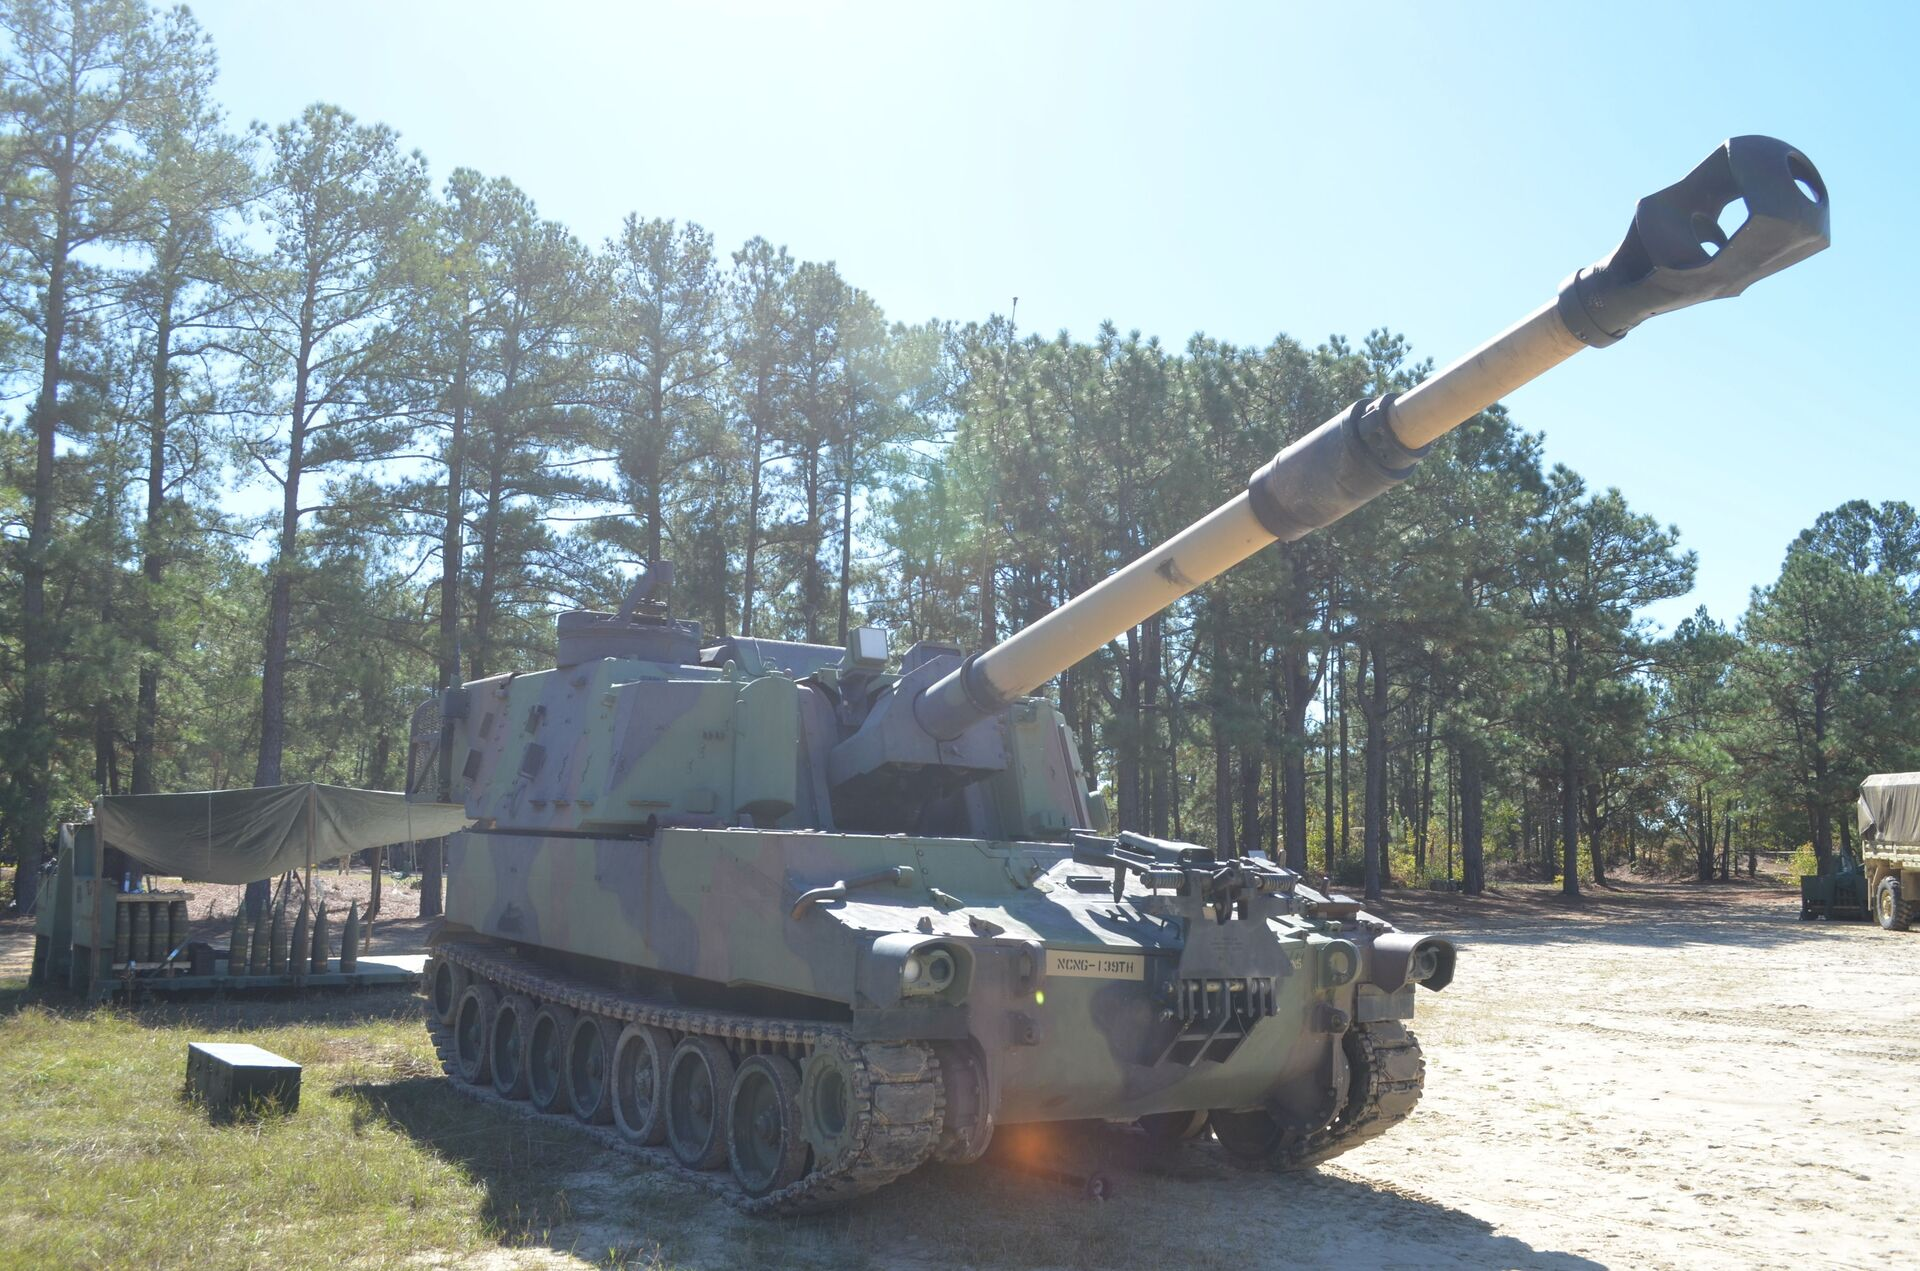 """The M109 Paladin Self-Propelled Howitzer standing ready deep in the southern training areas at Fort Bragg. Nine National Guard troops from North and South Carolina, Florida, Georgia, Mississippi, Illinois and New Jersey are attending the 13 Bravo artillery military occupational specialty (MOS) reclassification course and will learn how to be a crew member on the three main """"cannon"""" artillery weapons systems in the U.S. Army: The M119A3 105mm light towed howitzer, M777A2 155mm medium towed howitzer and the M109A6 Paladin 155mm self-propelled howitzer. Over the course of two days in the field, students will fire hundreds of rounds from all three weapons. - Sputnik International, 1920, 07.09.2021"""